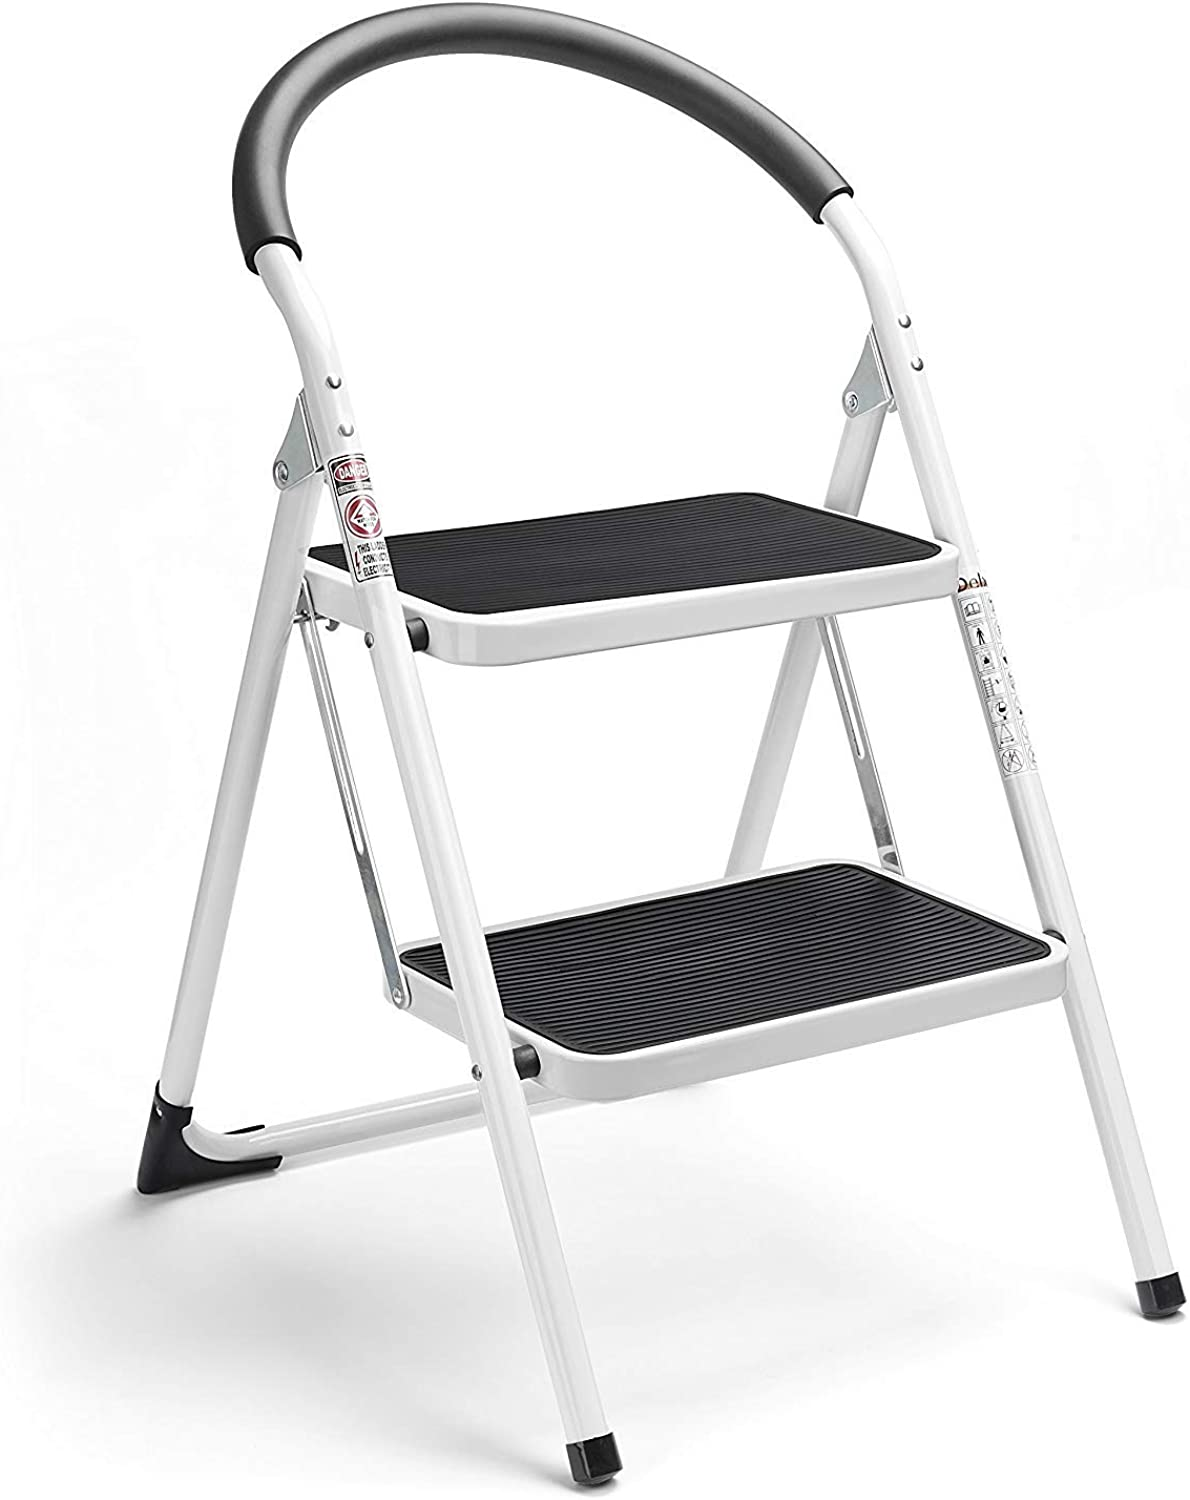 Delxo 2 Step Stool Folding Step Stool Steel Stepladders with Handgrip Anti-Slip Sturdy and Wide Pedal Steel Ladder 330lbs White and Black Combo 2-Feet (2 Step Stool)